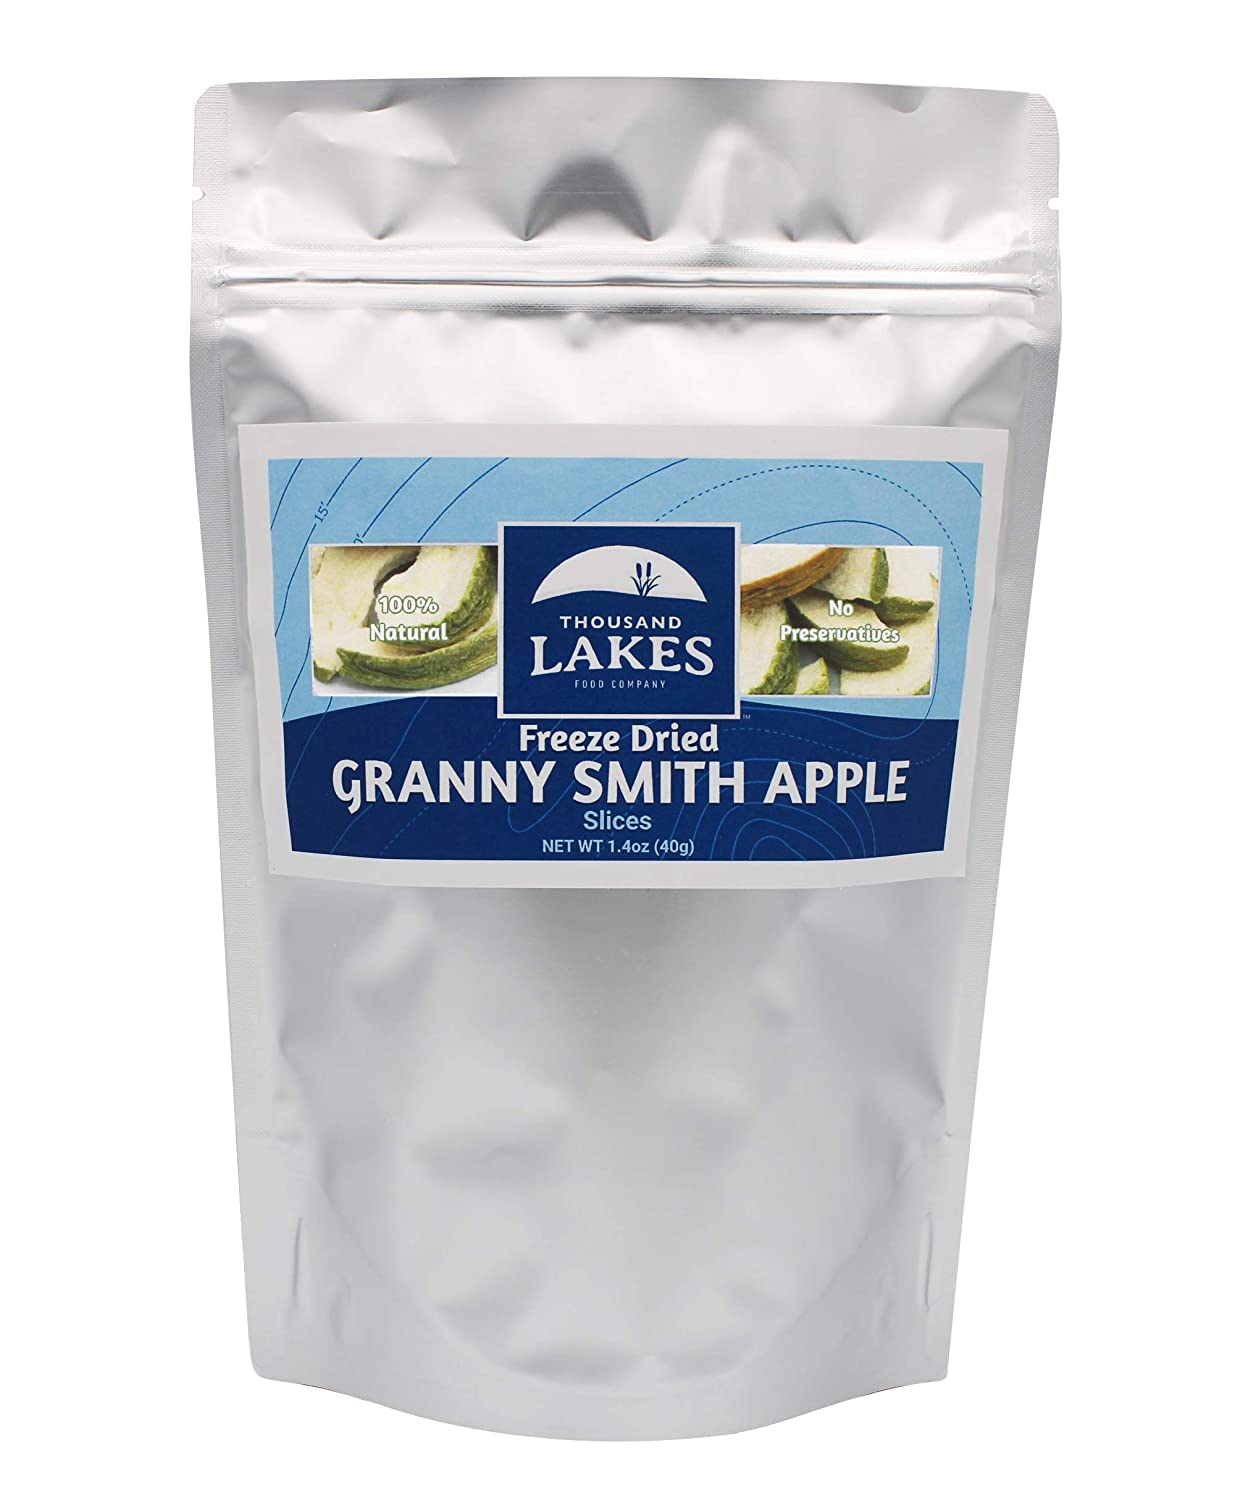 Thousand Lakes Freeze Dried Fruits and Vegetables - Granny Smith Apples 1.4 ounces   No Sugar Added   100% Sliced Apples with Peel